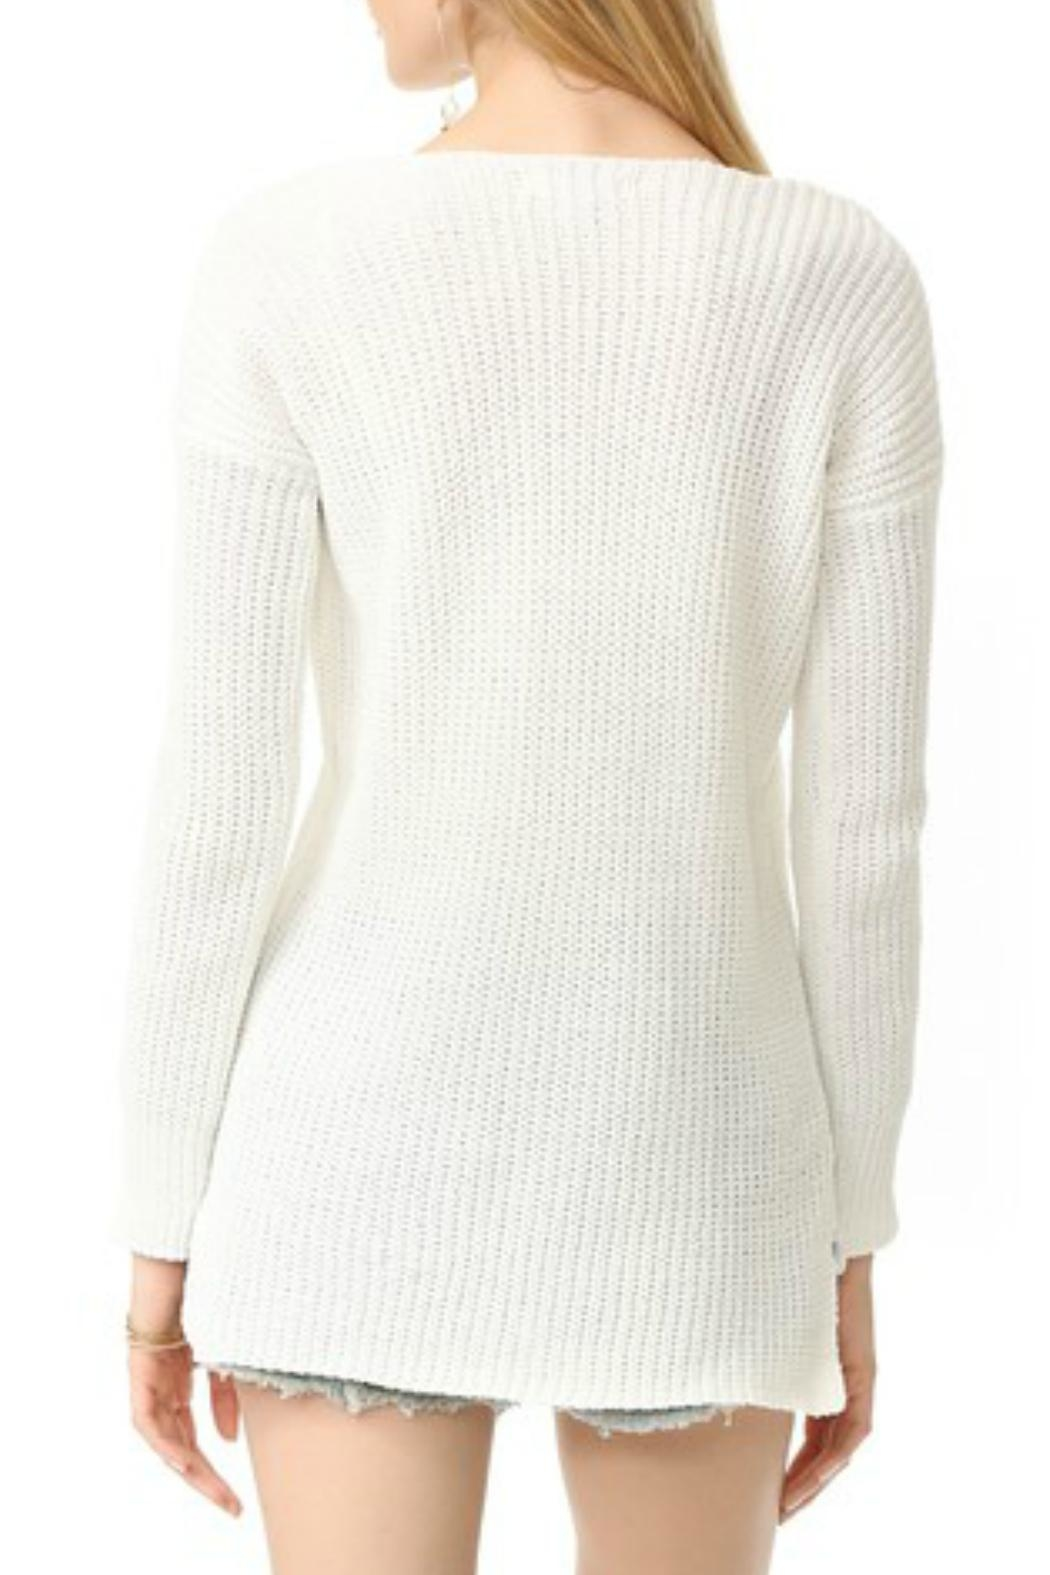 BB Dakota Zona Boyfriend Sweater from Canada by Blue Sky Fashions ...